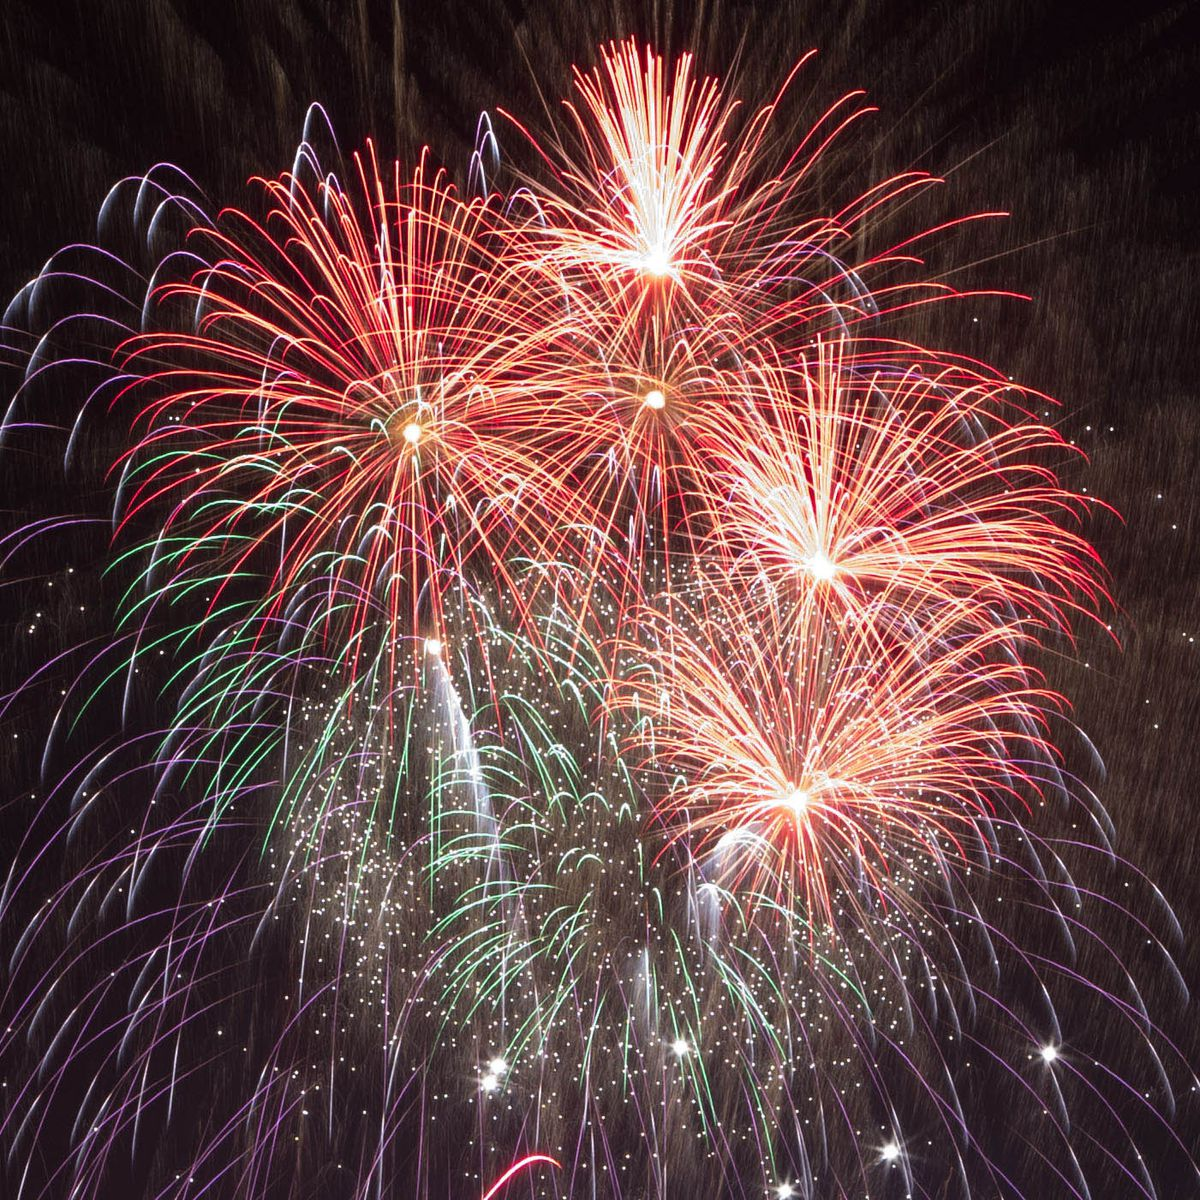 Capital City, Wetumpka among cities holding New Year's Eve ...